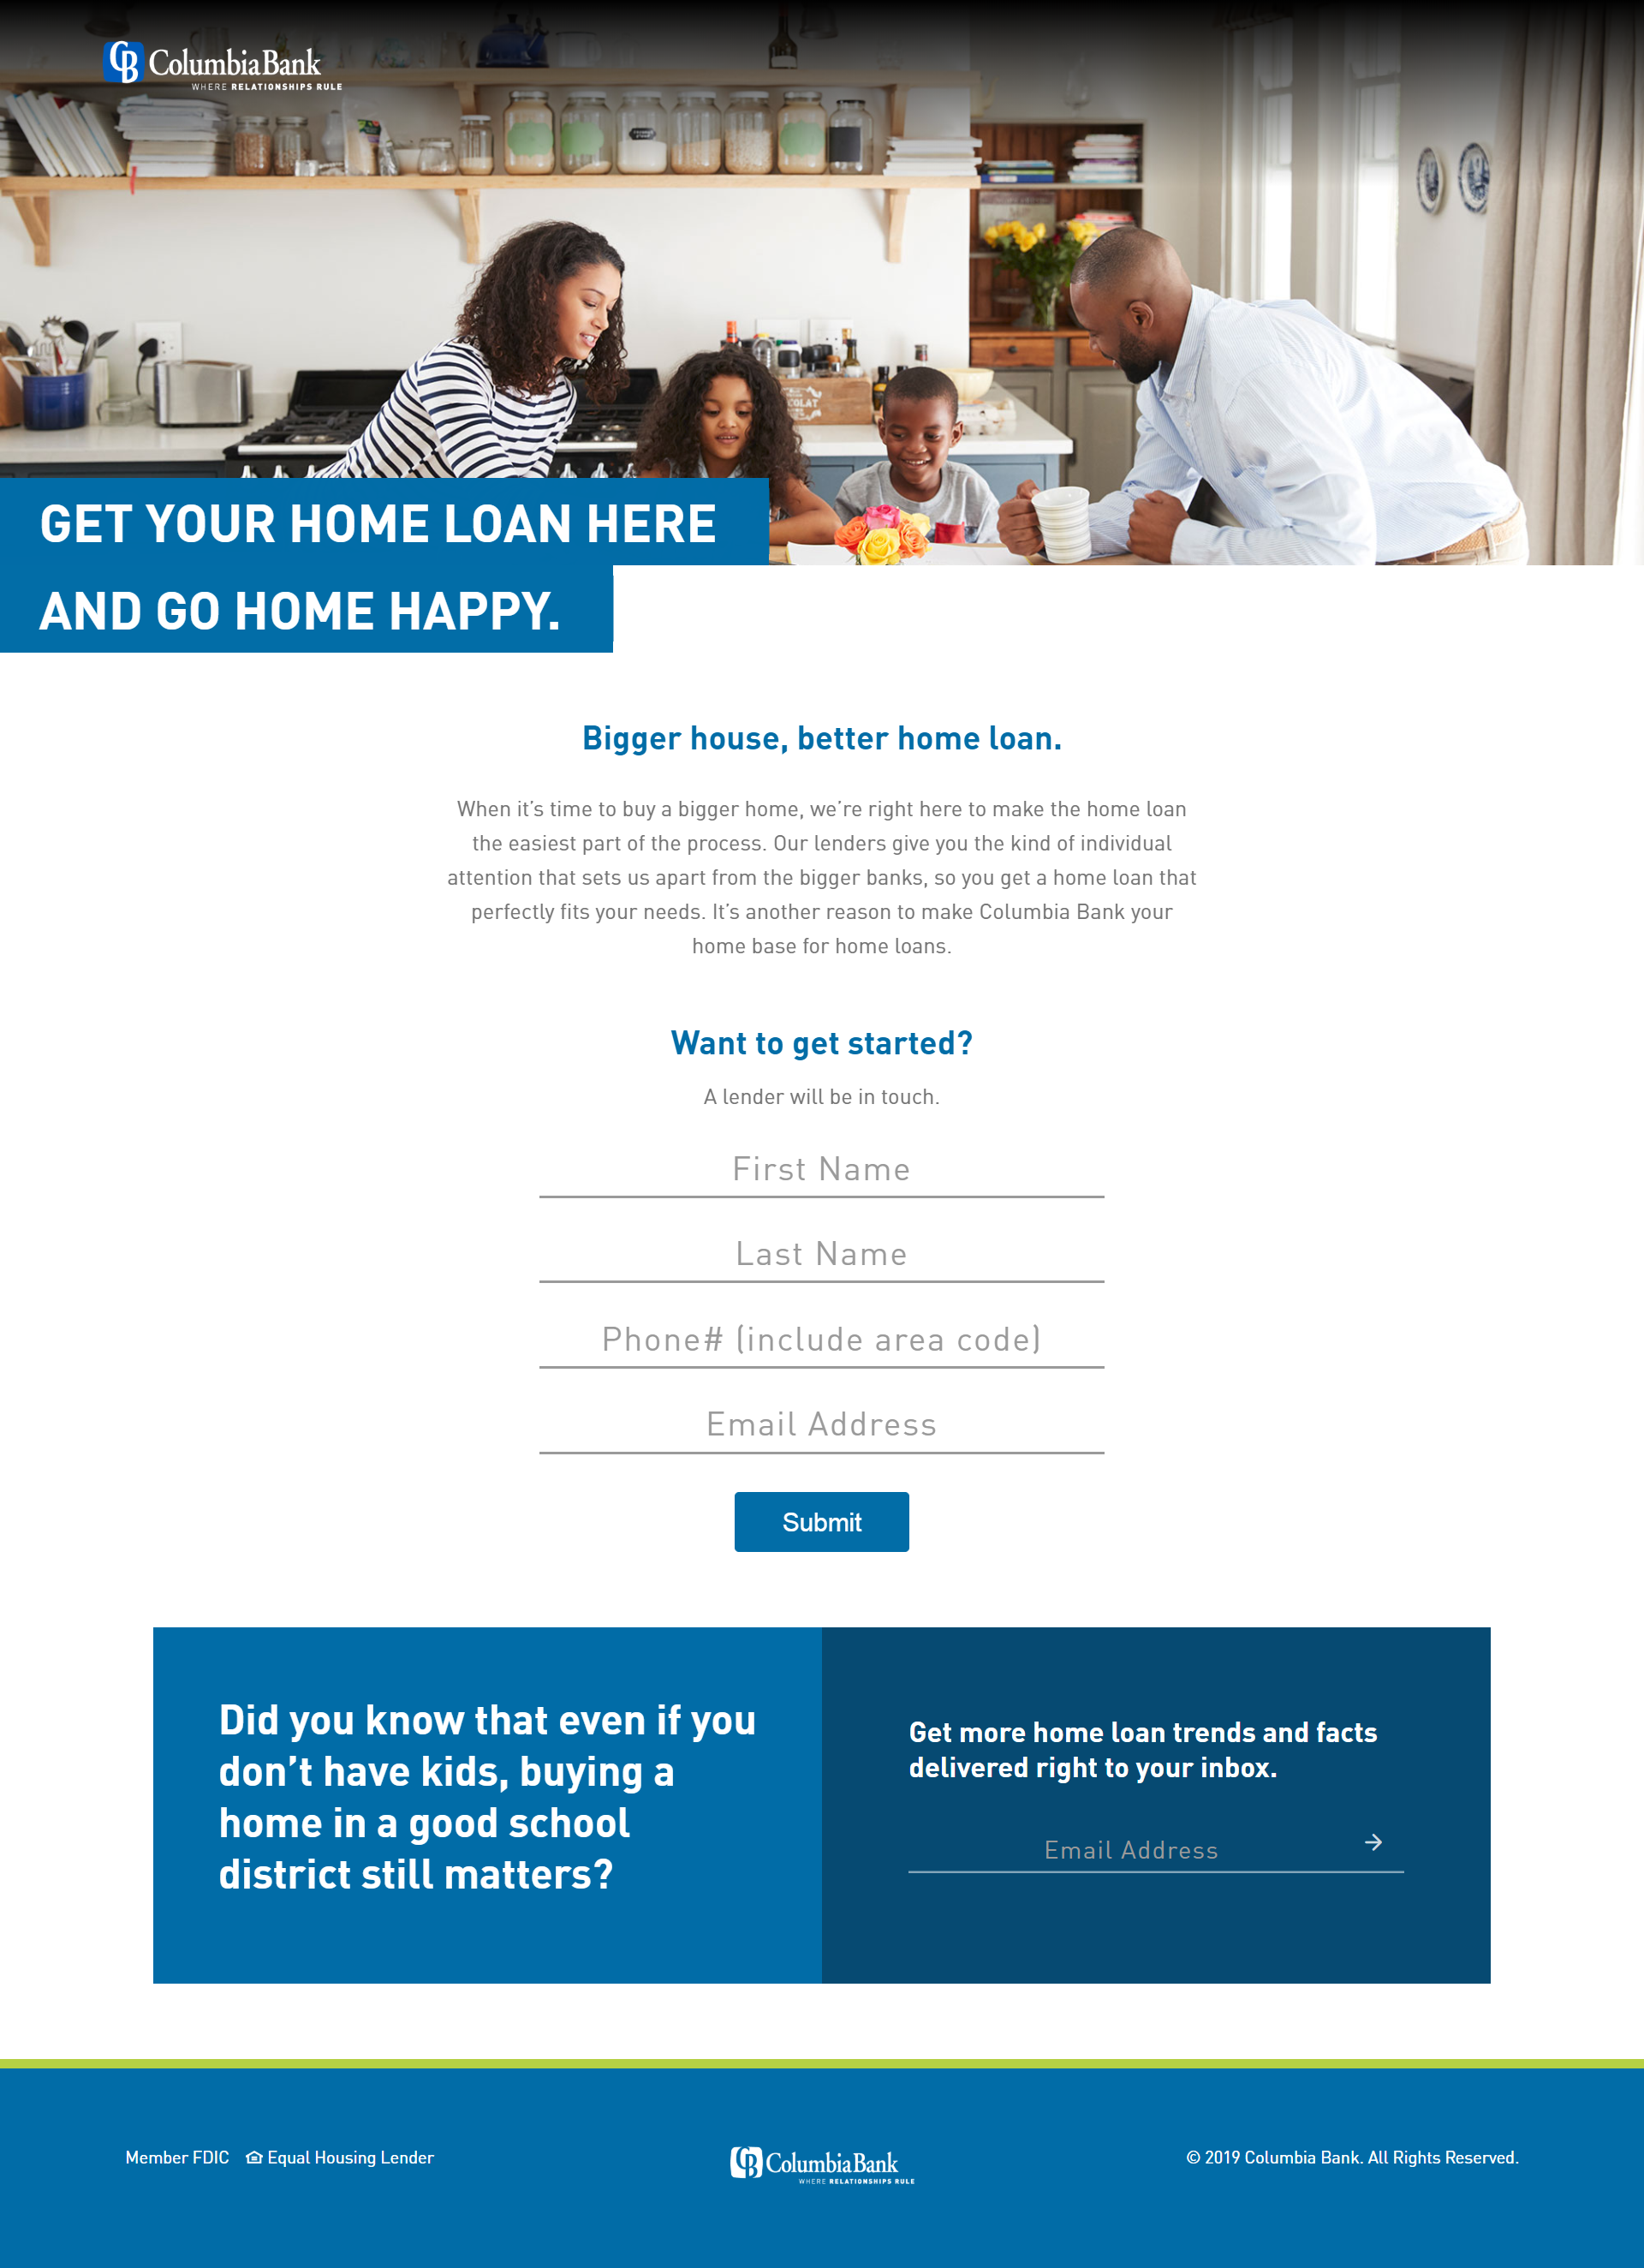 screencapture-pages-contact-columbiabank-LP-282-2019-01-16-11_40_51.png